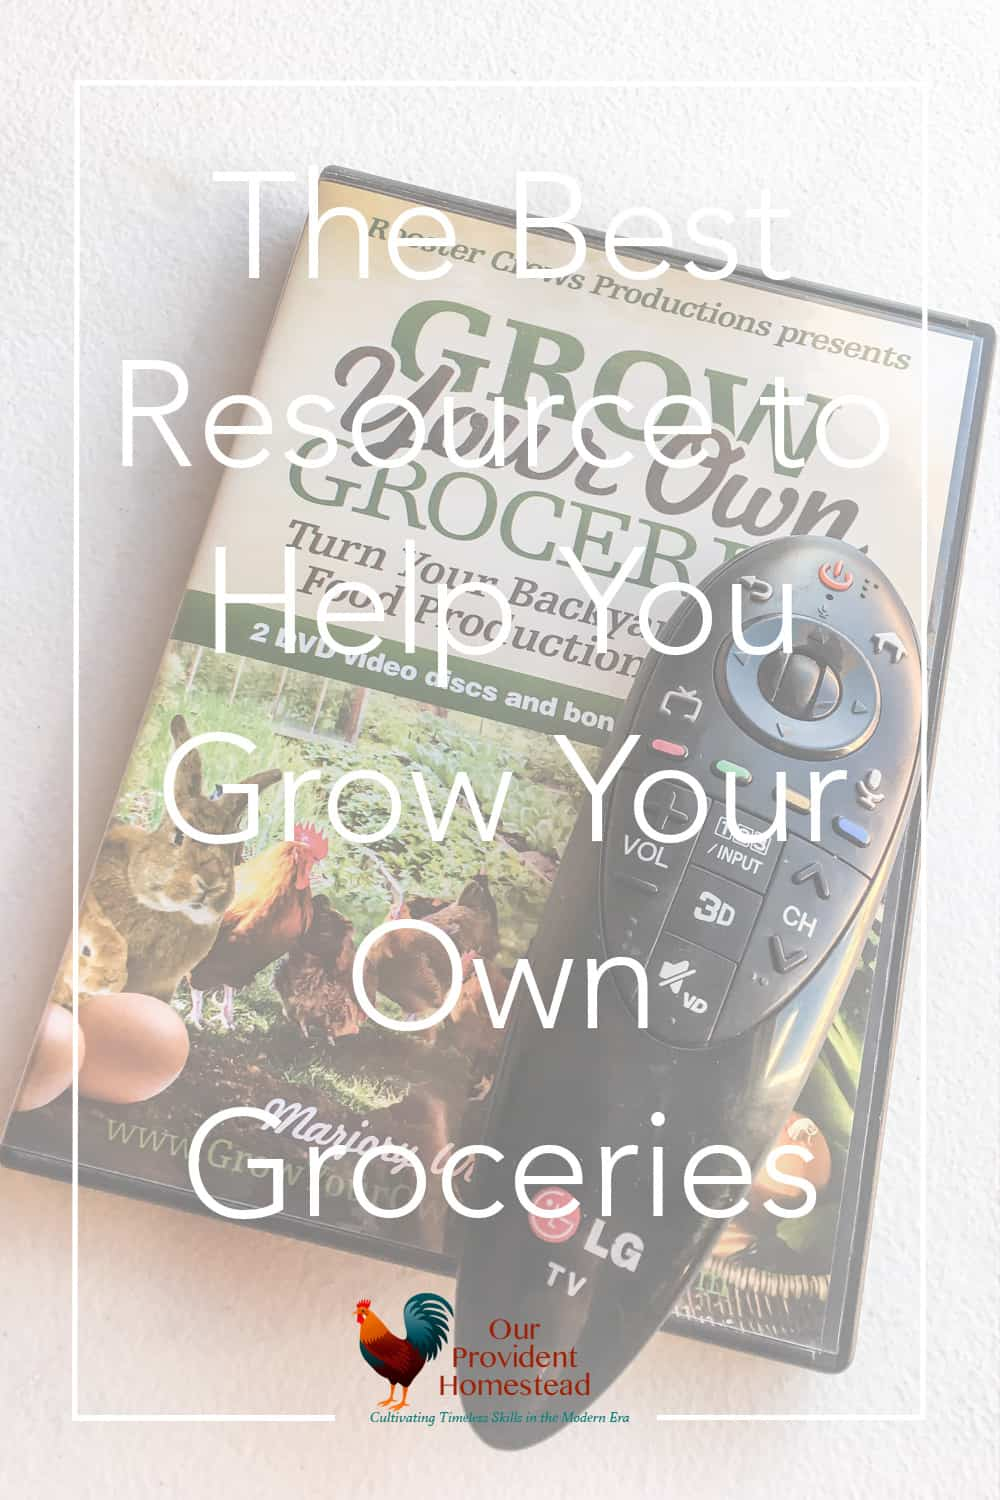 Do you need help learning how to grow your own food? We discuss the best resource to help you grow your own groceries and where to find it. Growing Food | Homesteading Help | Grow Groceries